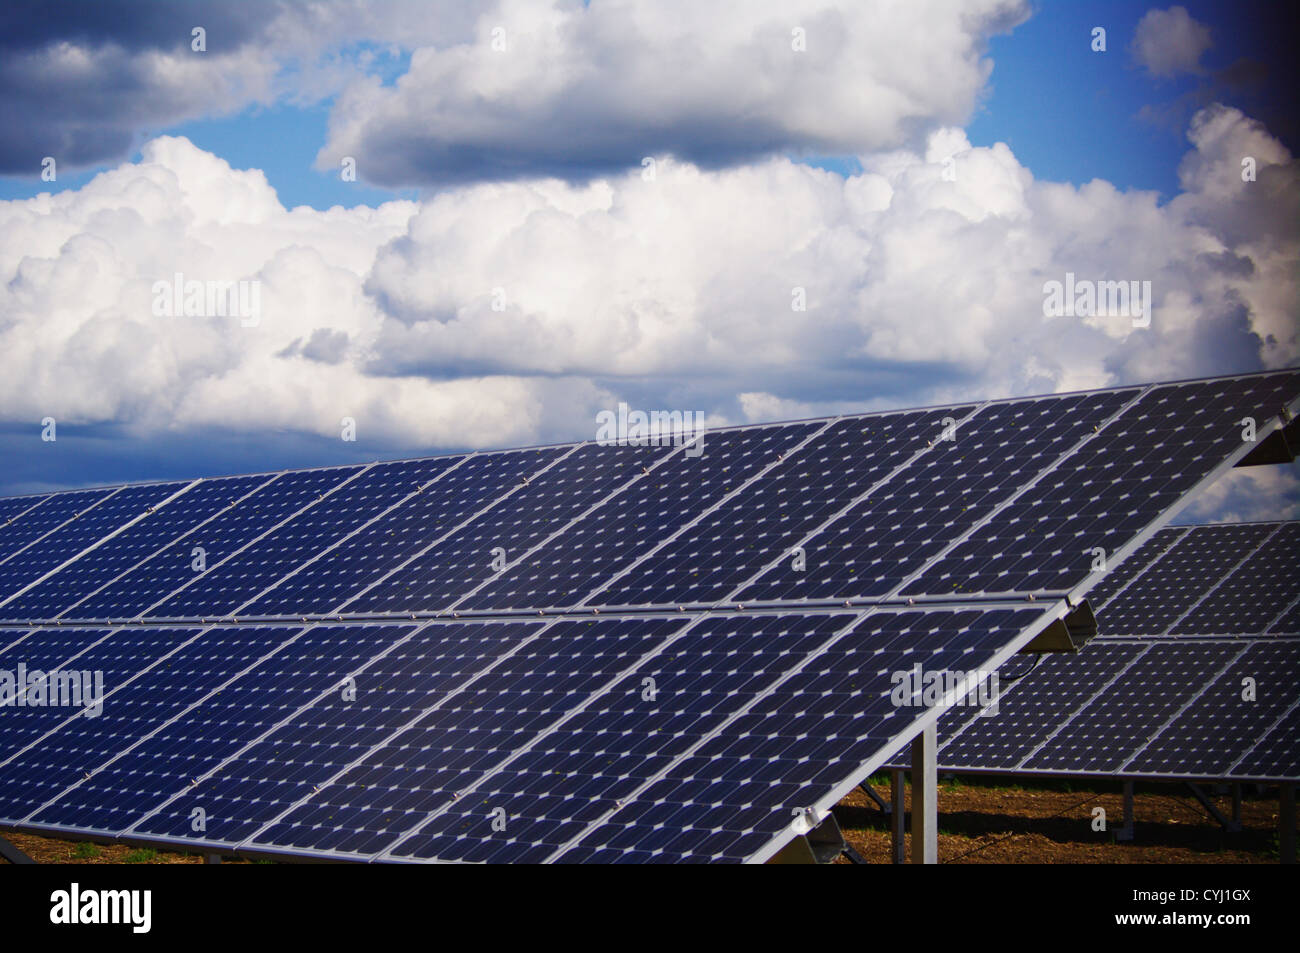 solar collector energy plant outside against sky - Stock Image